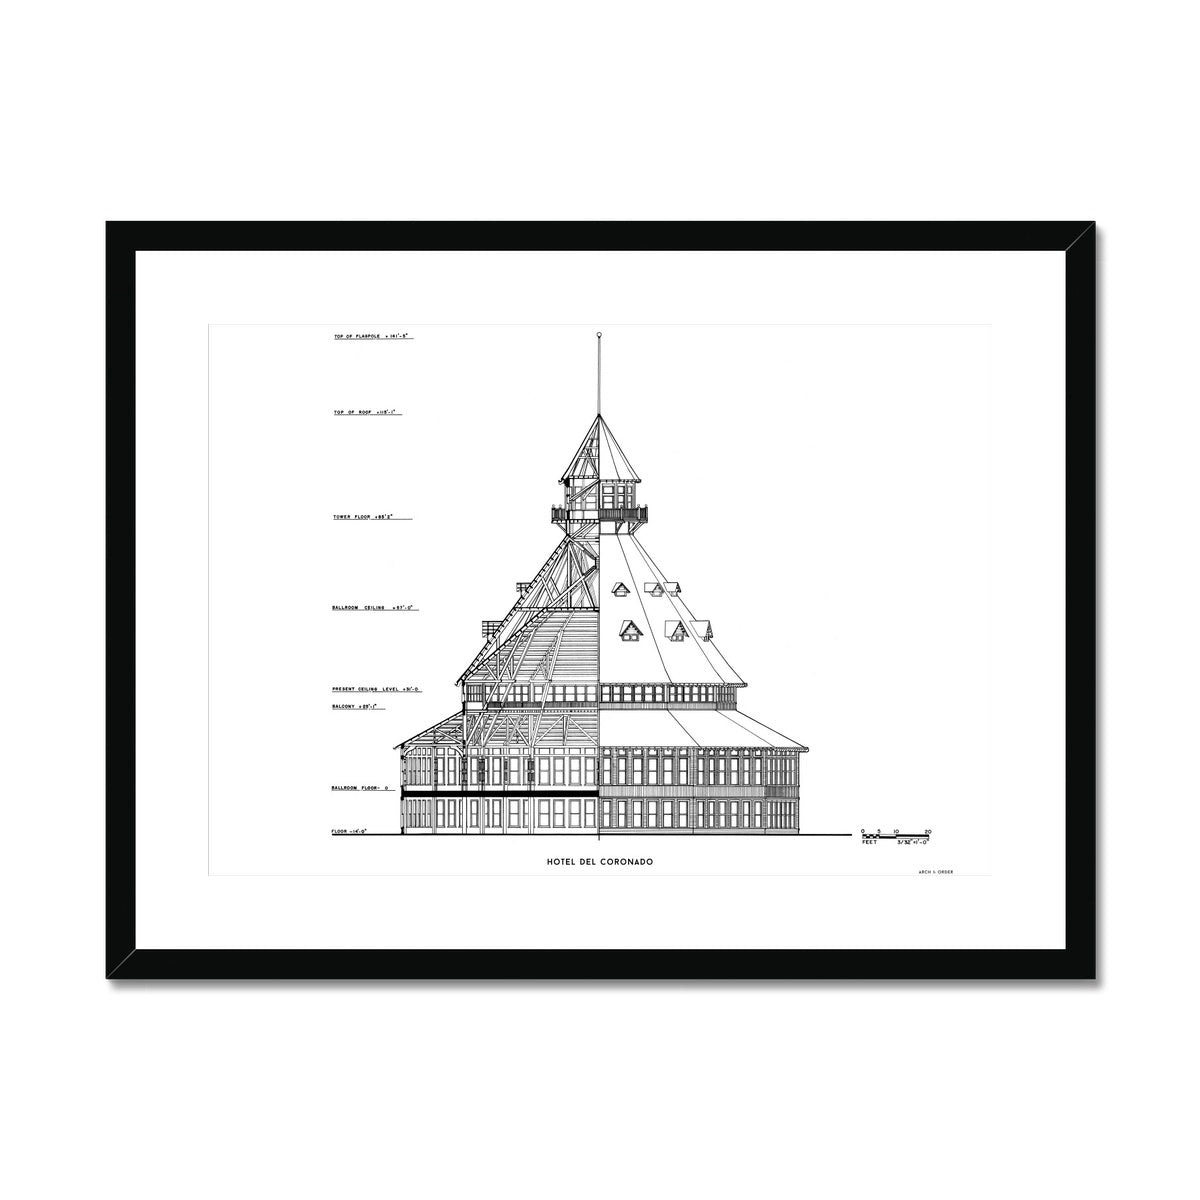 Hotel Del Coronado - Ballroom Cross Section - White -  Framed & Mounted Print